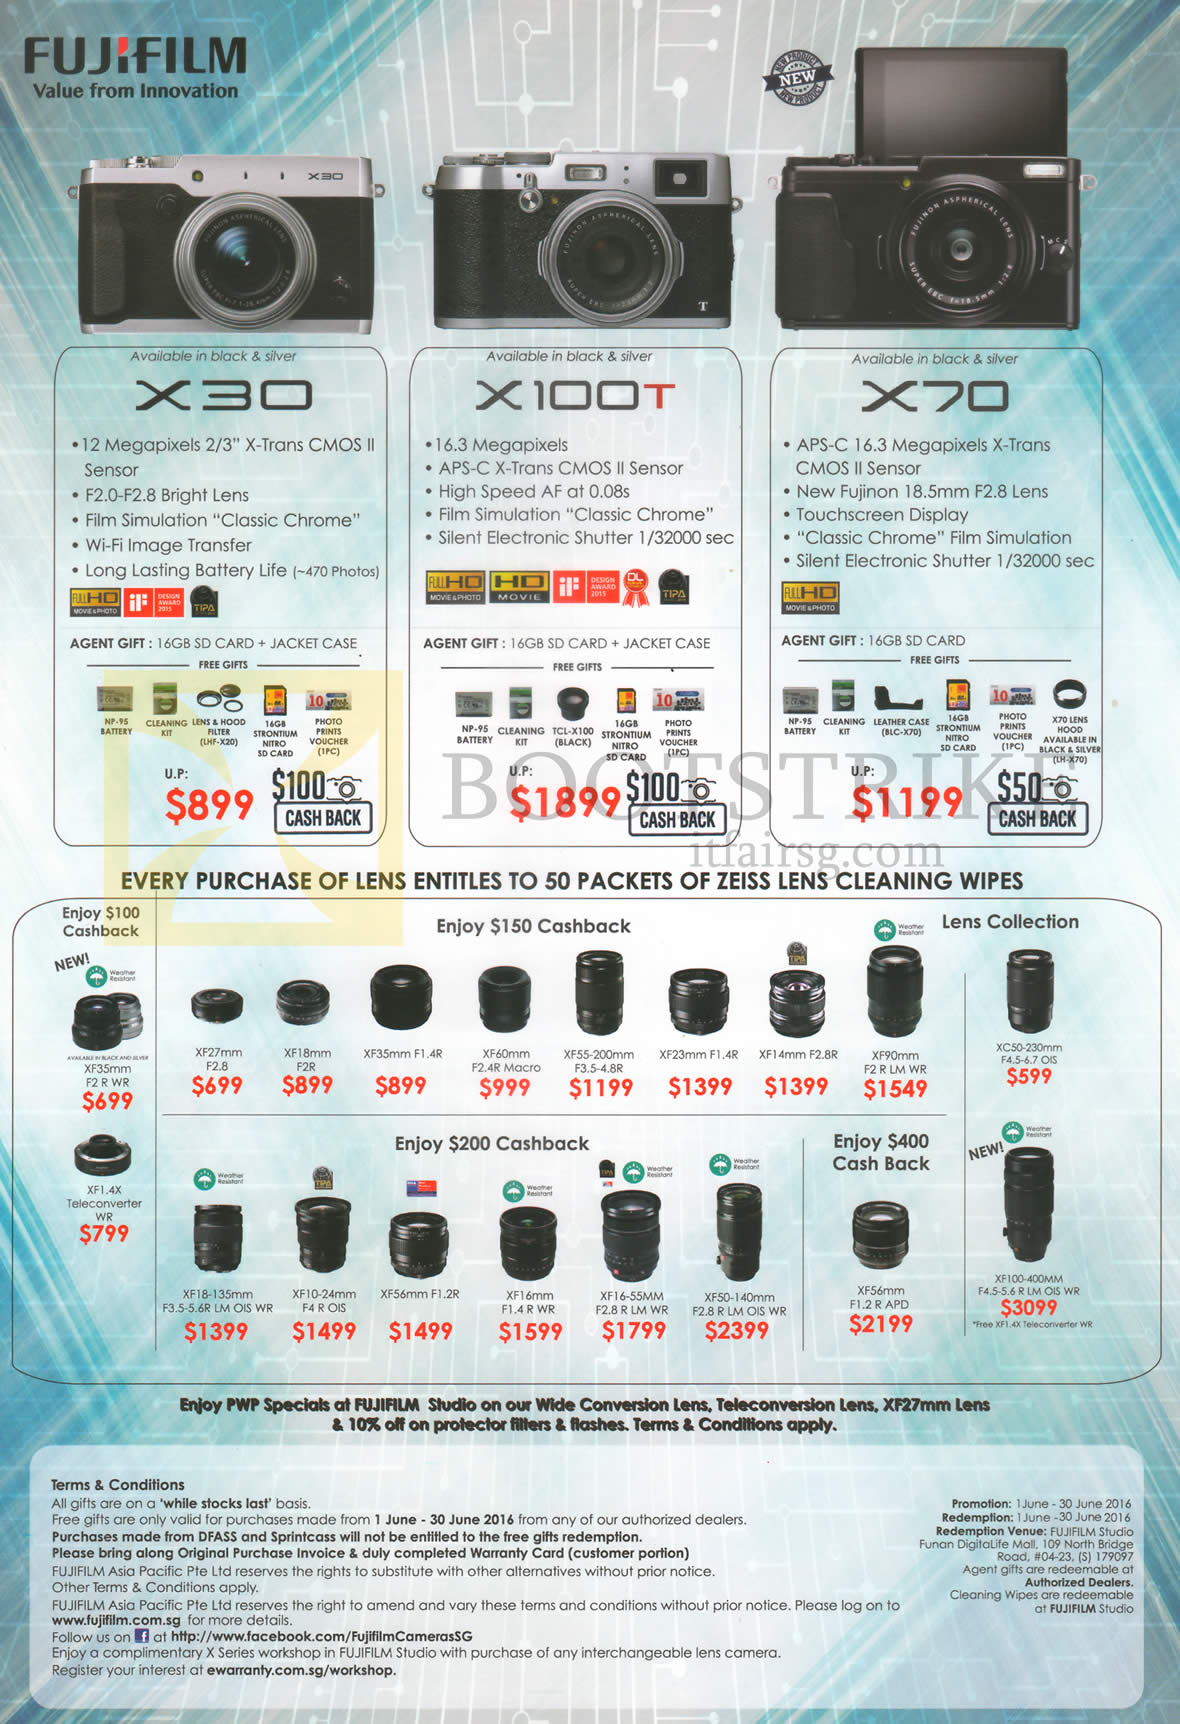 PC SHOW 2016 price list image brochure of Fujifilm Digital Cameras X30, X100T, X70, Lenses